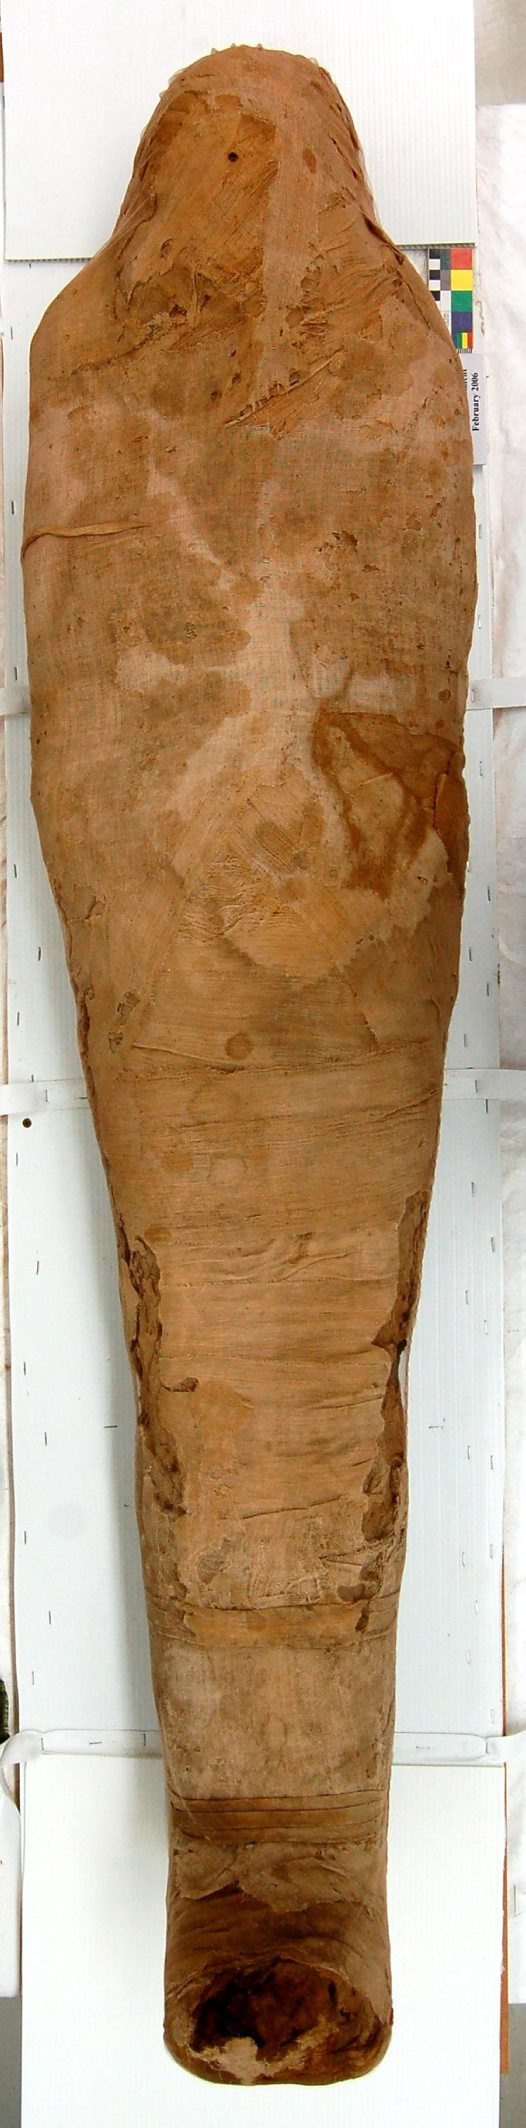 The museum mummy after treatment